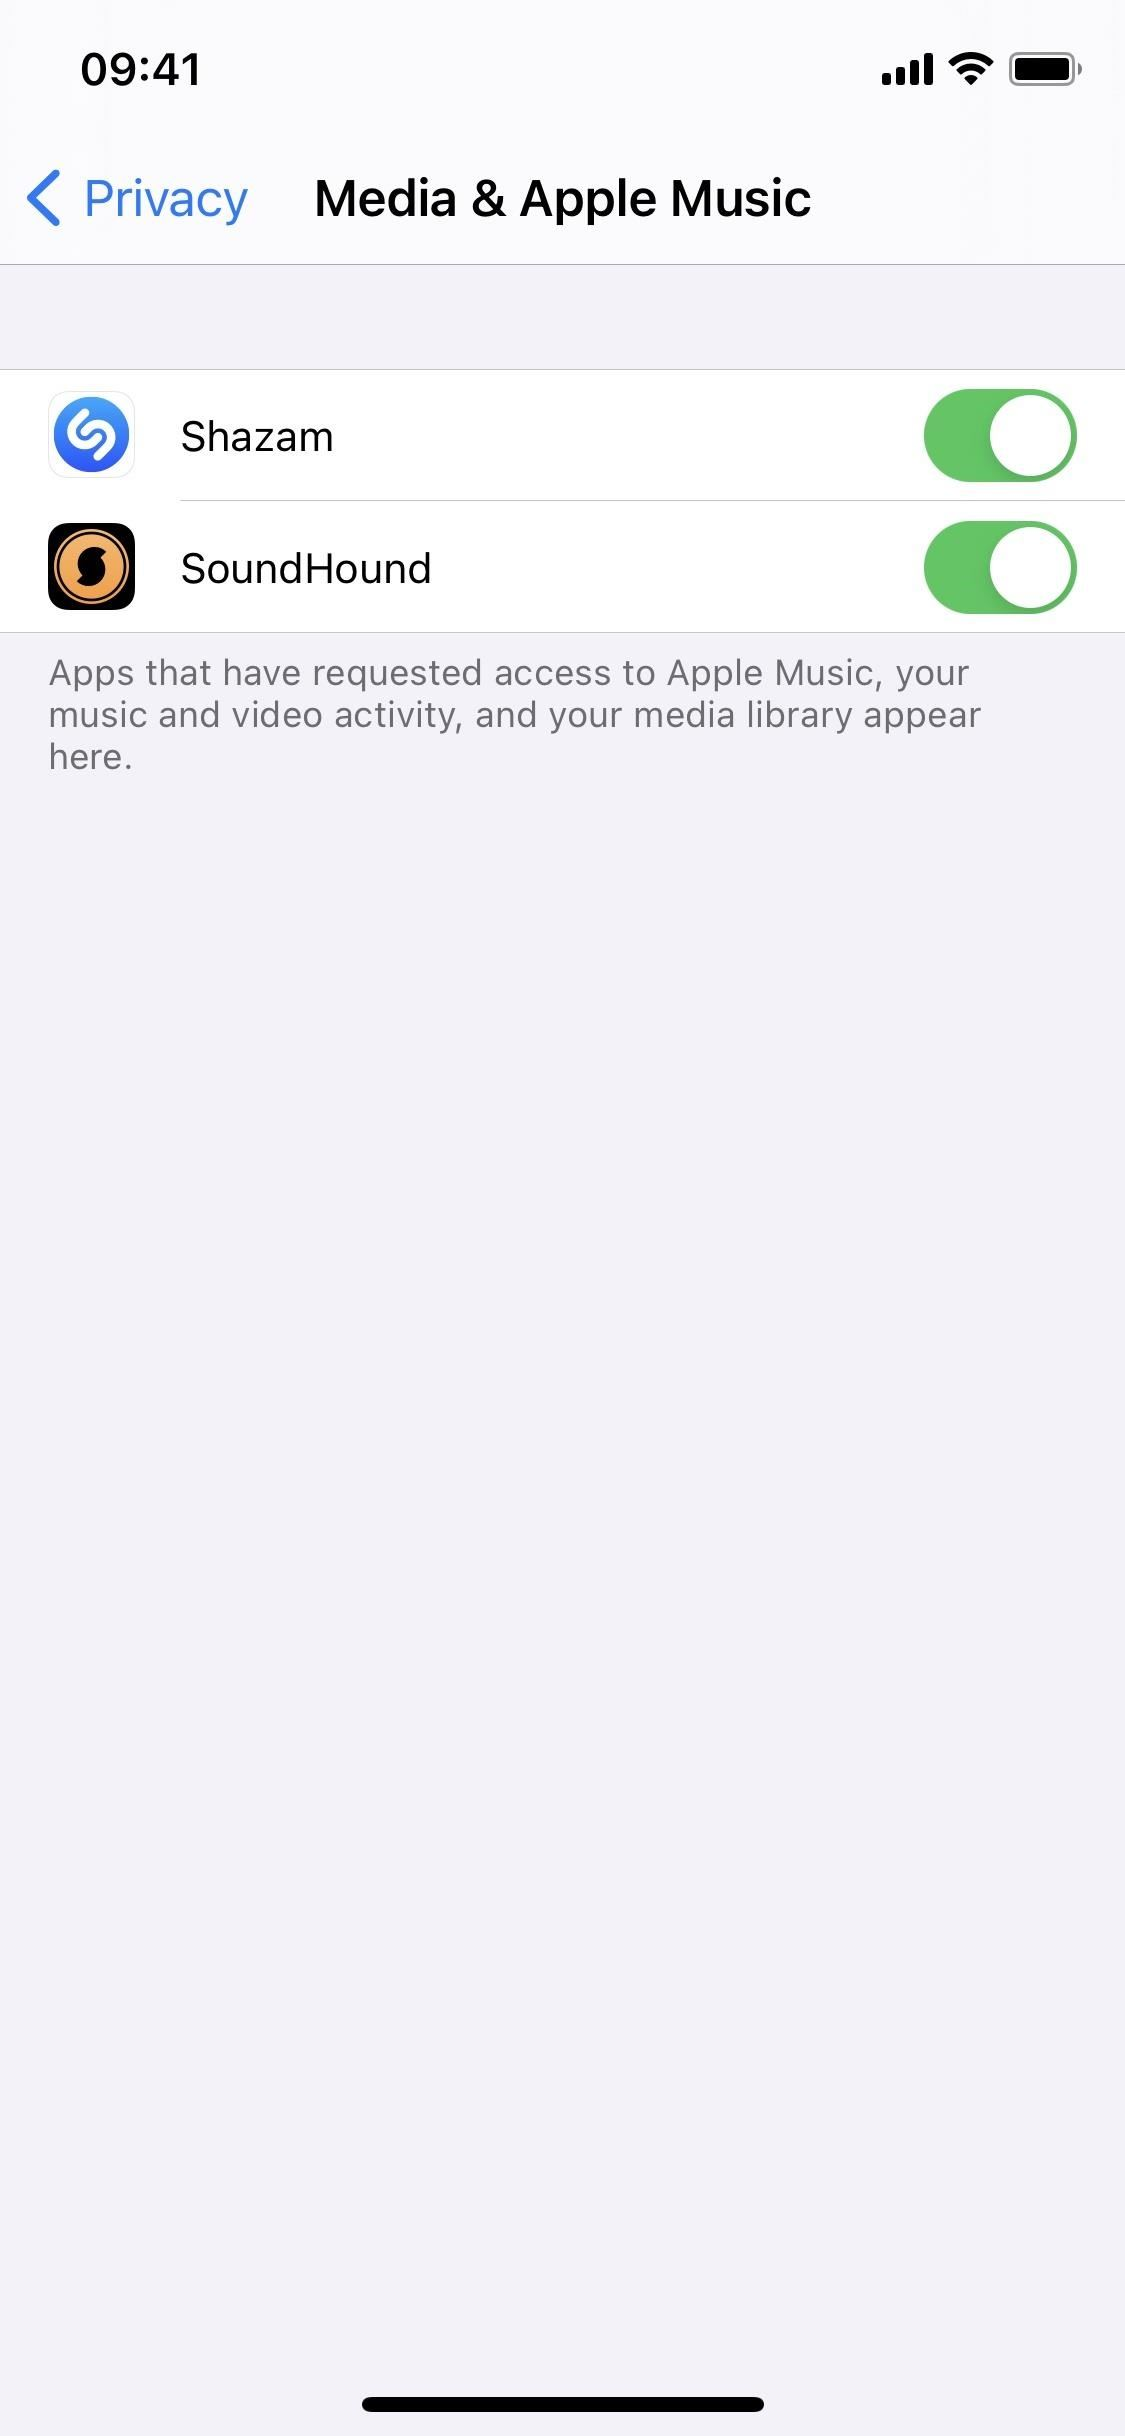 Apps & Services May Have Access to Your Apple Music & Media Library — Here's How to Check & Revoke Their Permissions